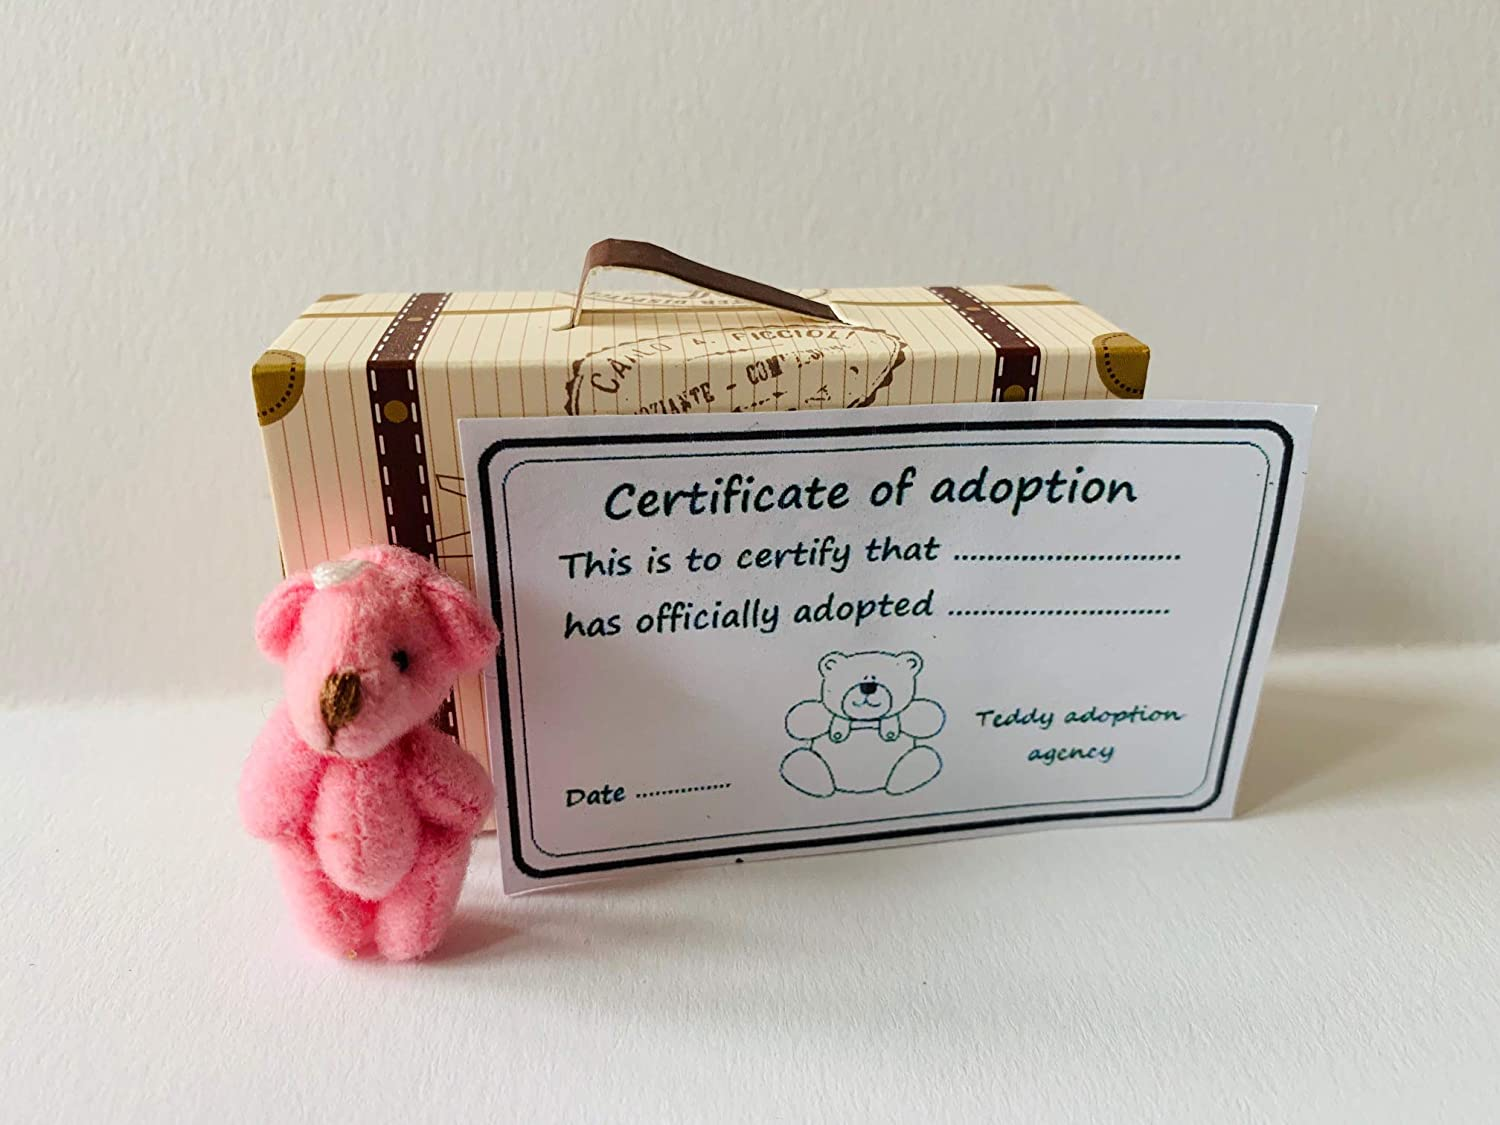 Tiny Pink Teddy Bear with Adoption Certificate in Cardboard Suitcase